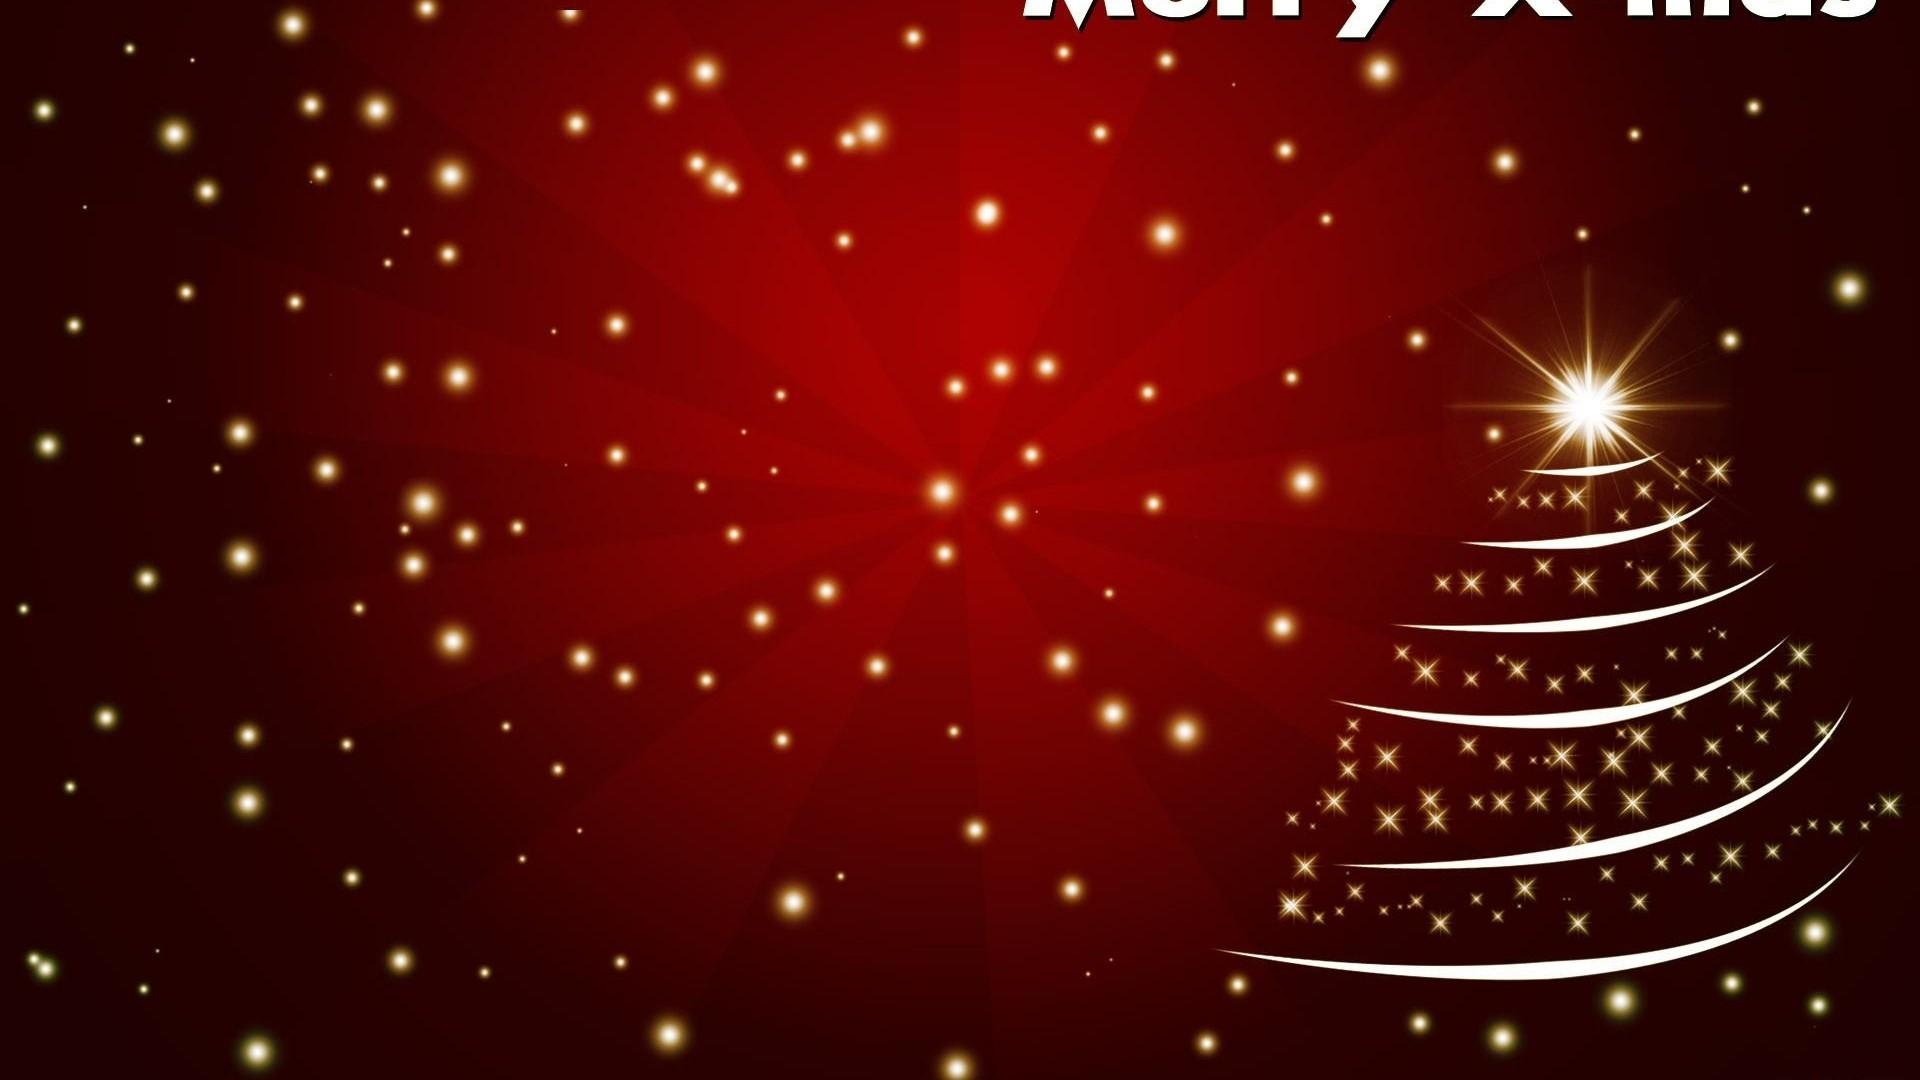 1920x1080 ... Background Full HD 1080p.  Wallpaper christmas tree, stars,  backgrounds, lettering, wishes, holiday, christmas